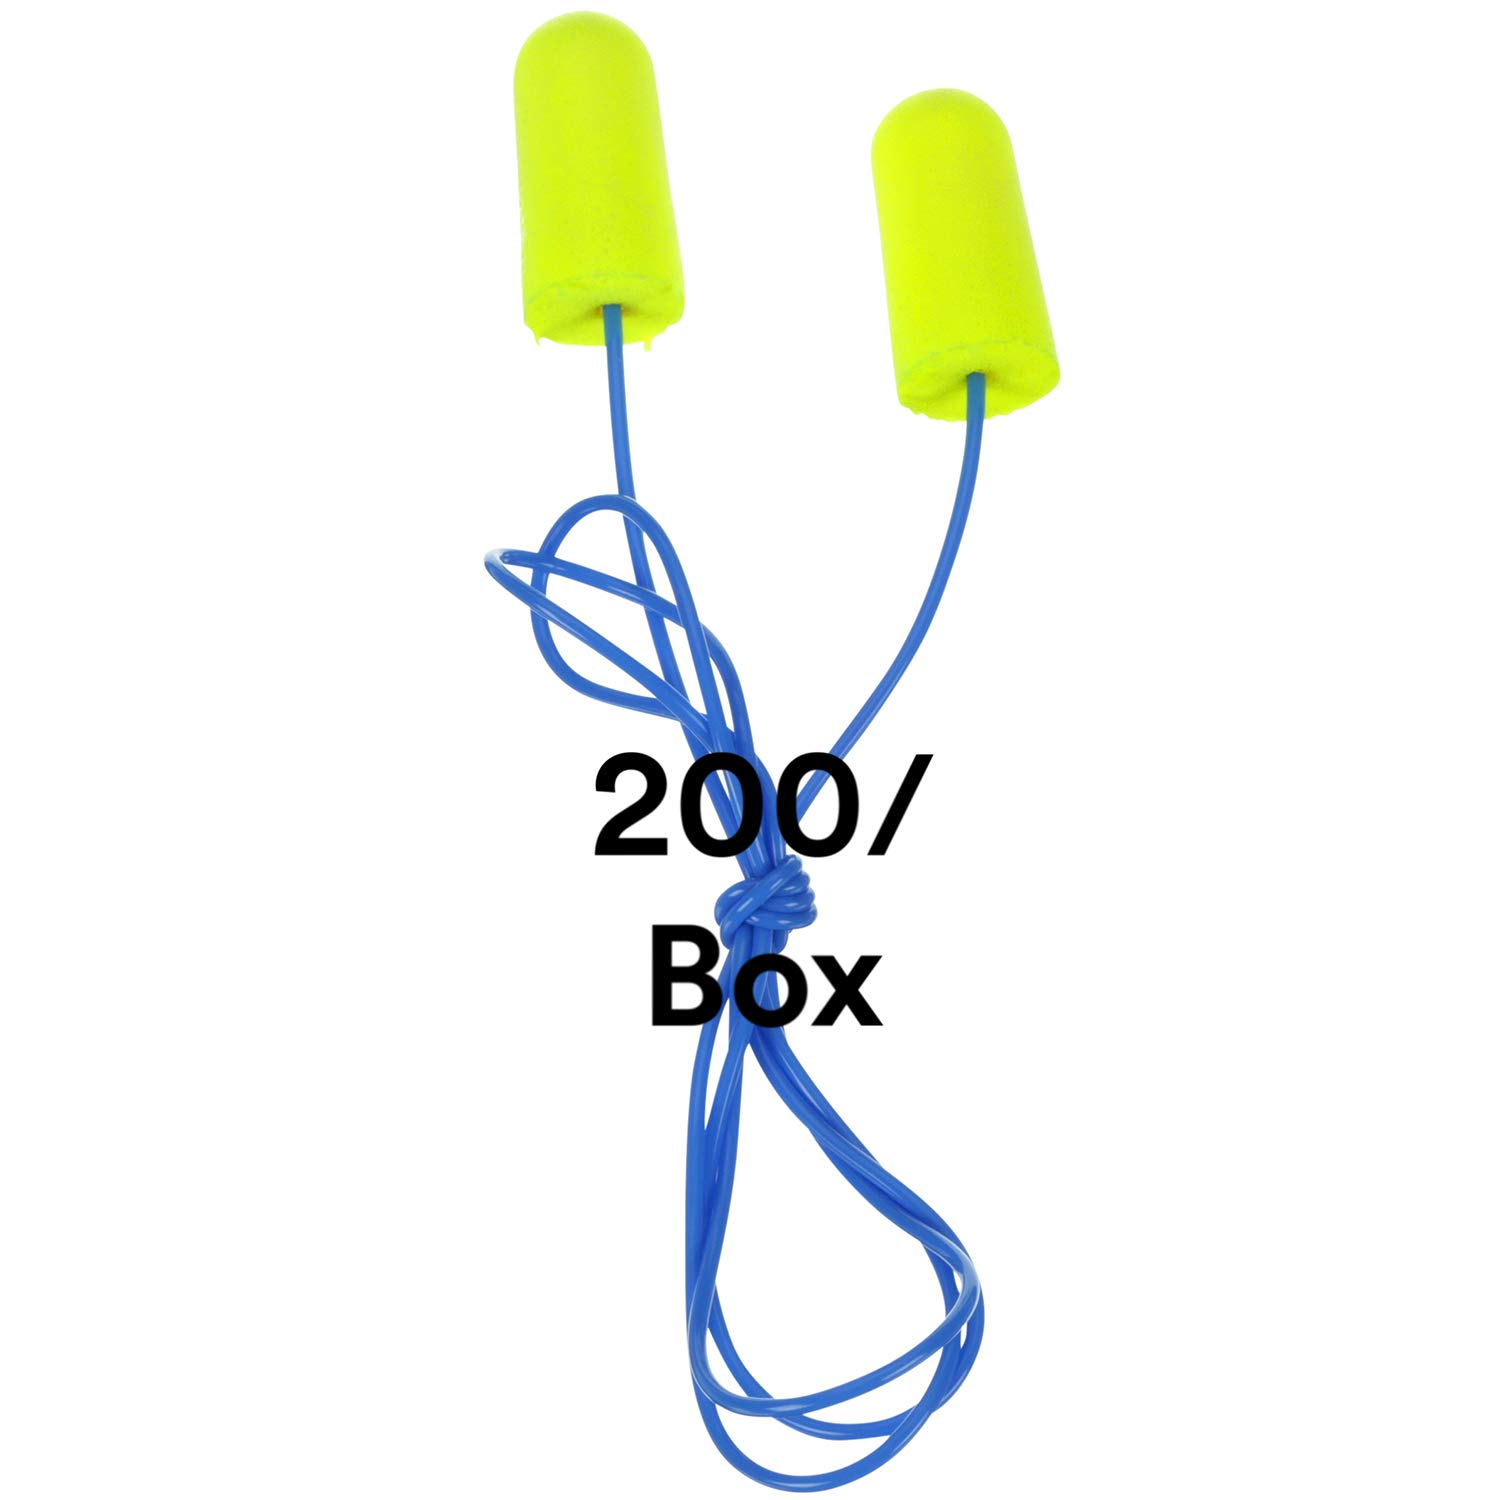 3M Ear Plugs 25% OFF 200 Online limited product Box Yellow E-A-Rsoft Corded Neons 311-1250